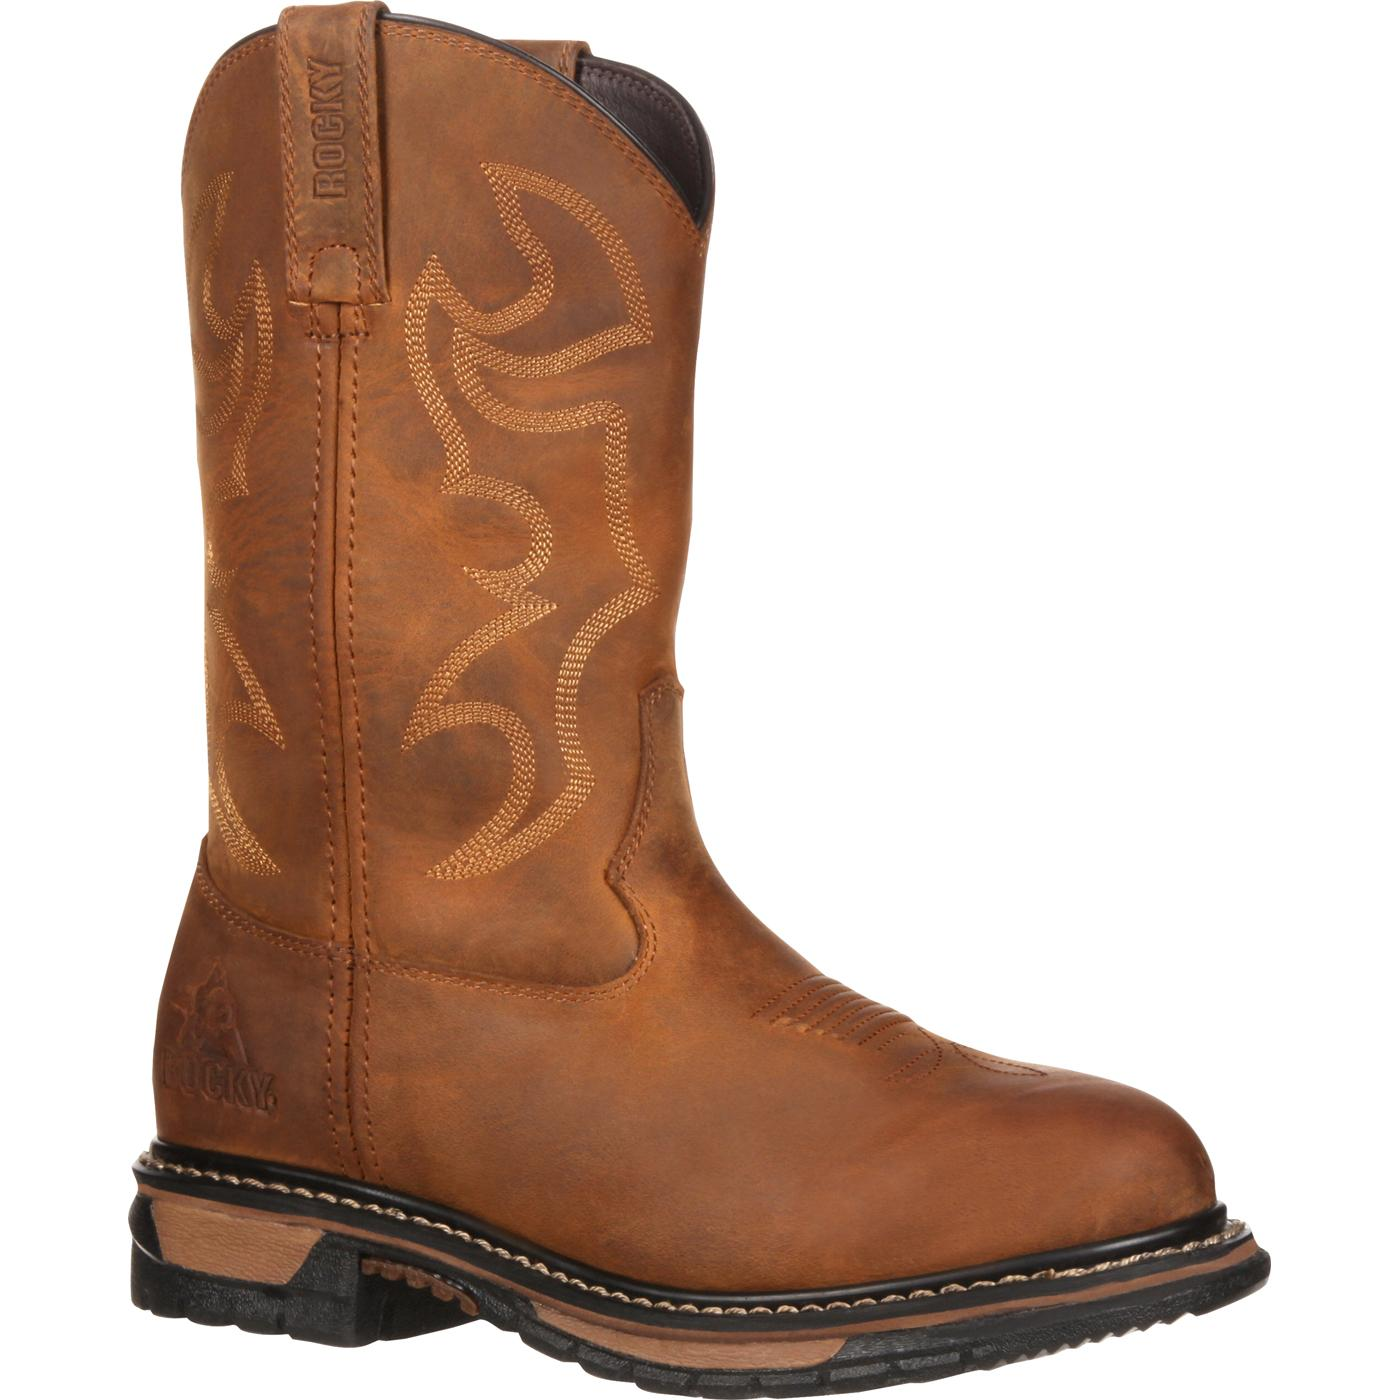 Womens Cowboy Work Boots Coltford Boots